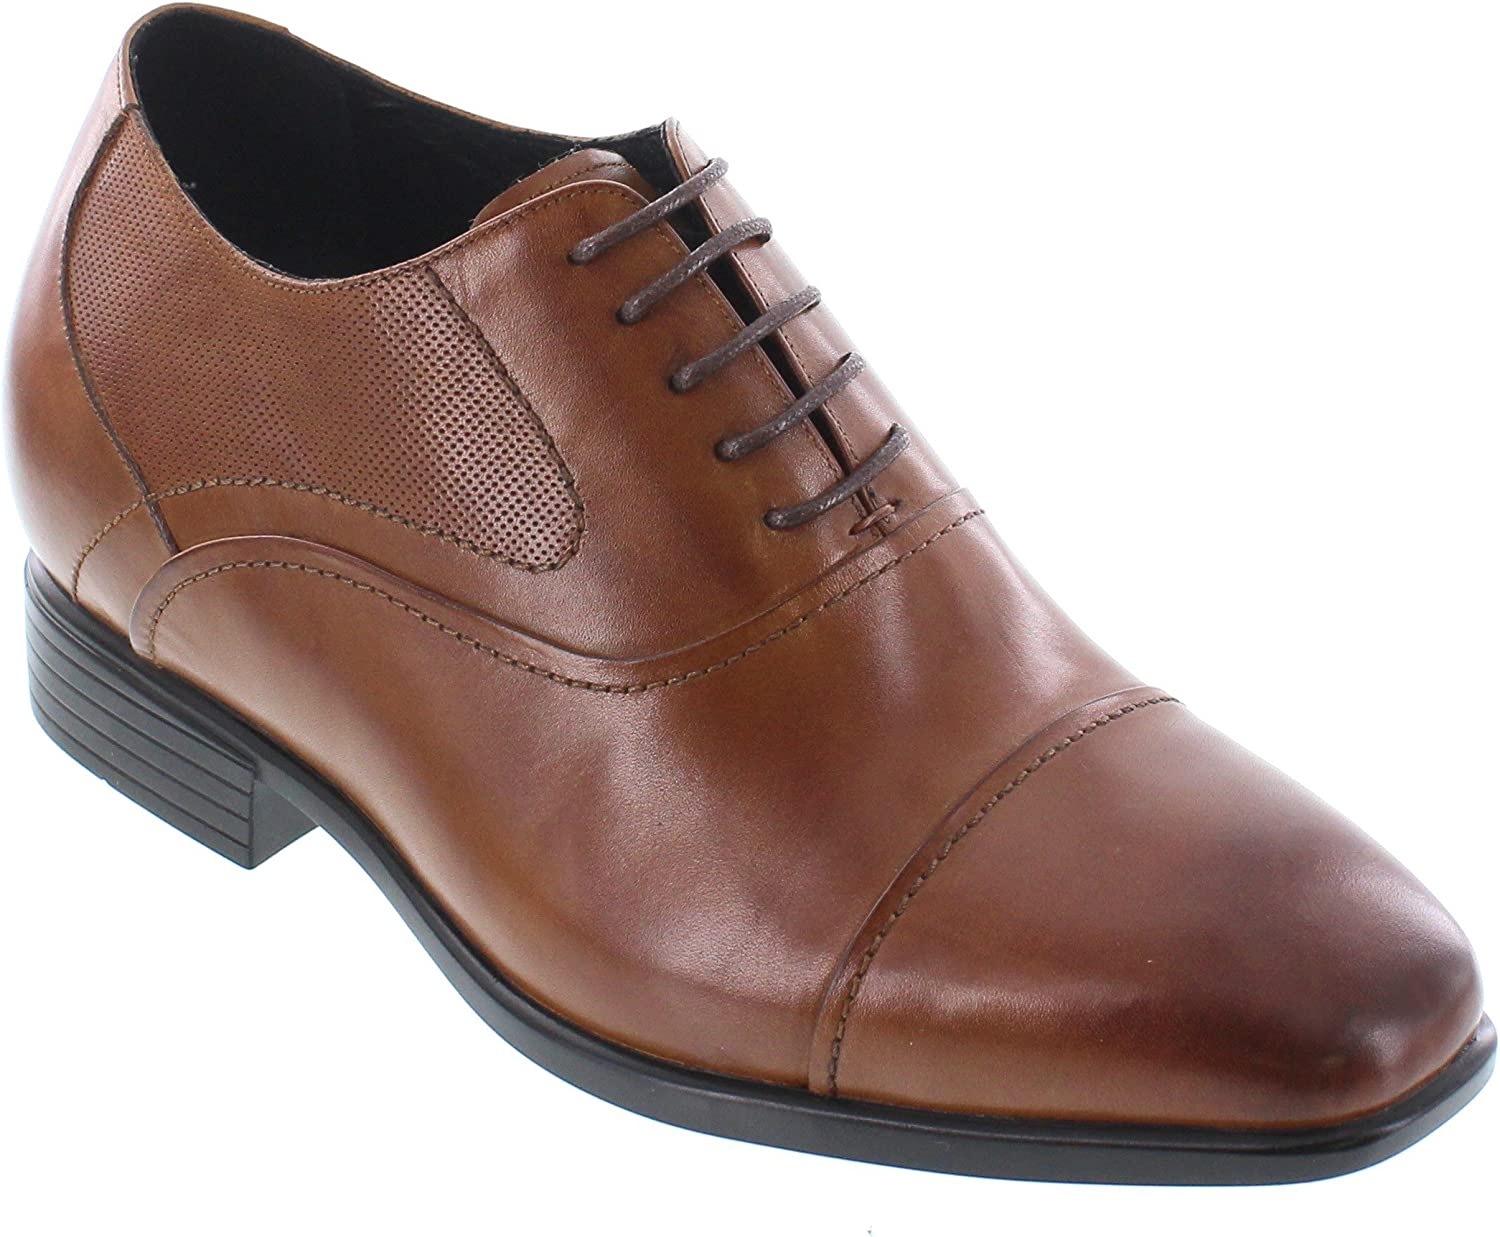 CALTO Men's Invisible Height Increasing Elevator shoes - Brown Premium Leather Lace-up Lightweight Formal Oxfords - 3.2 Inches Taller - Y4093